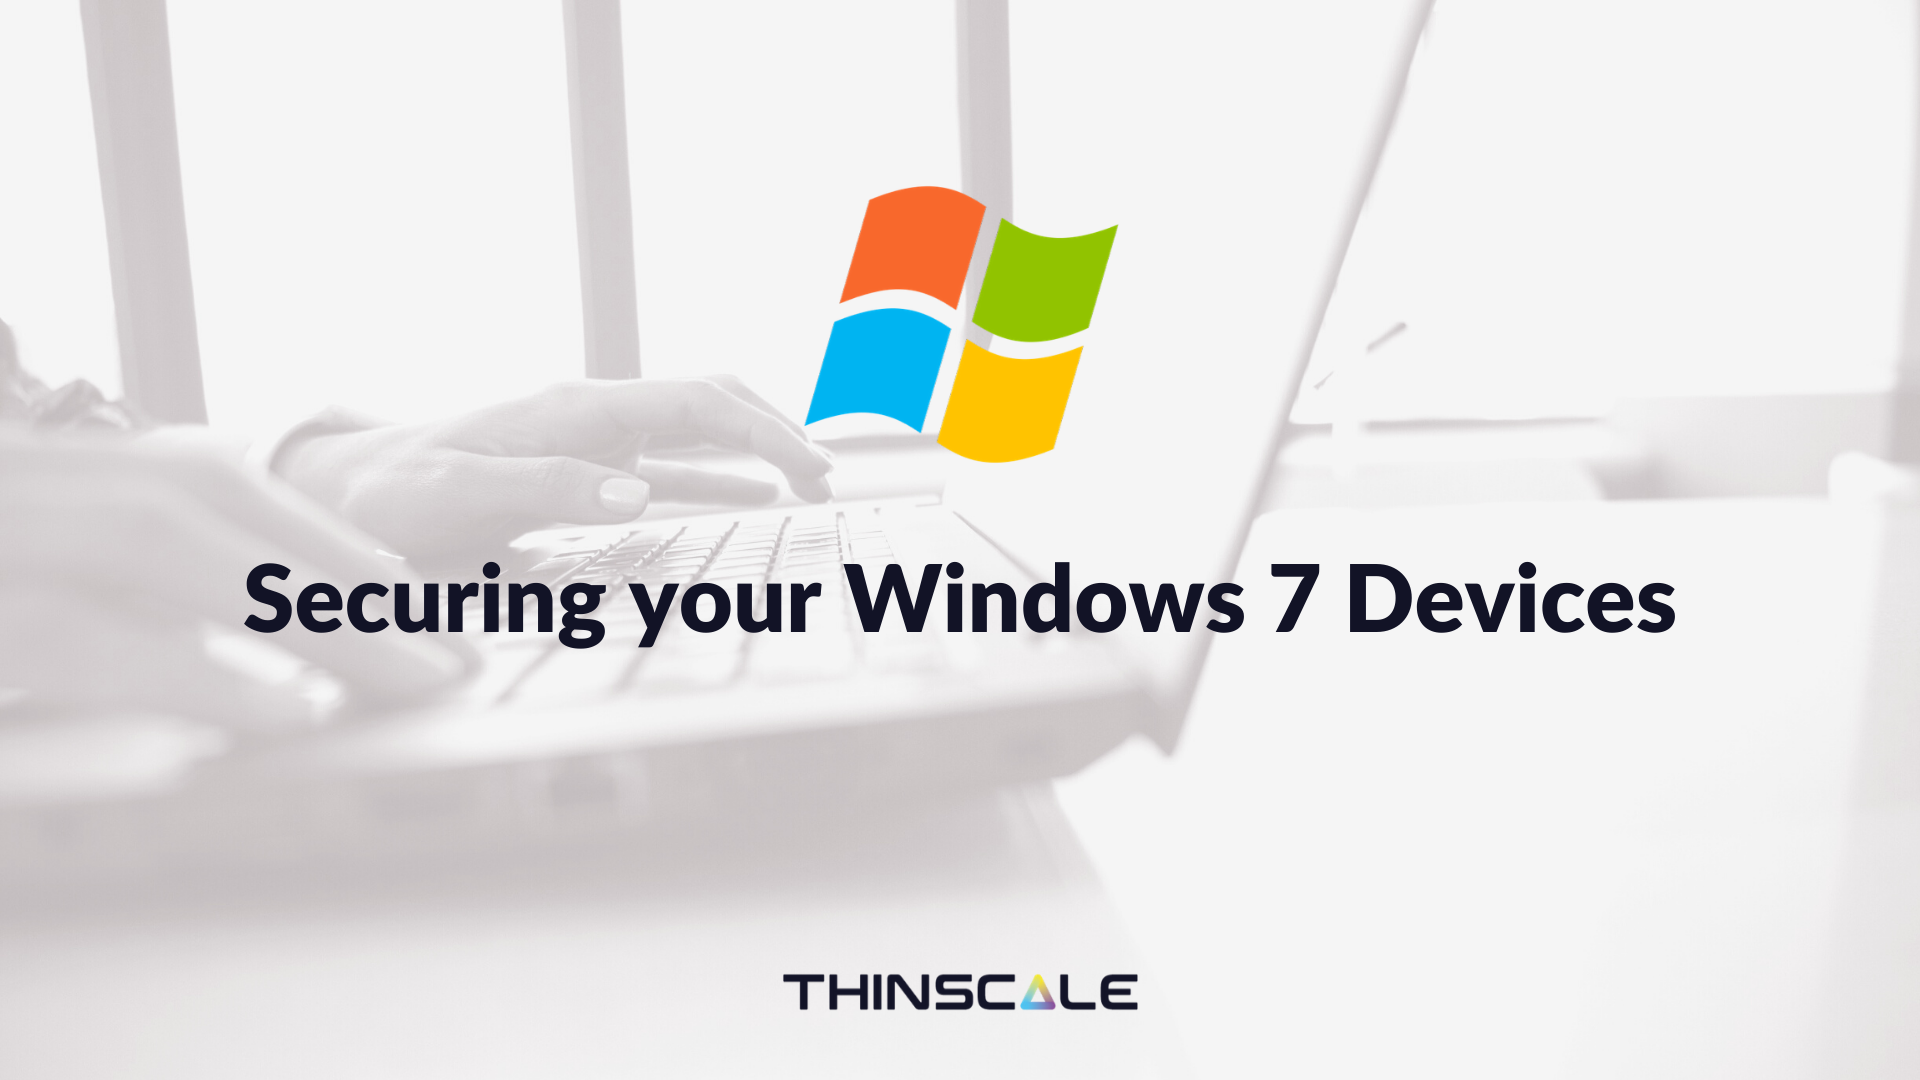 Securing your Windows 7 Devices